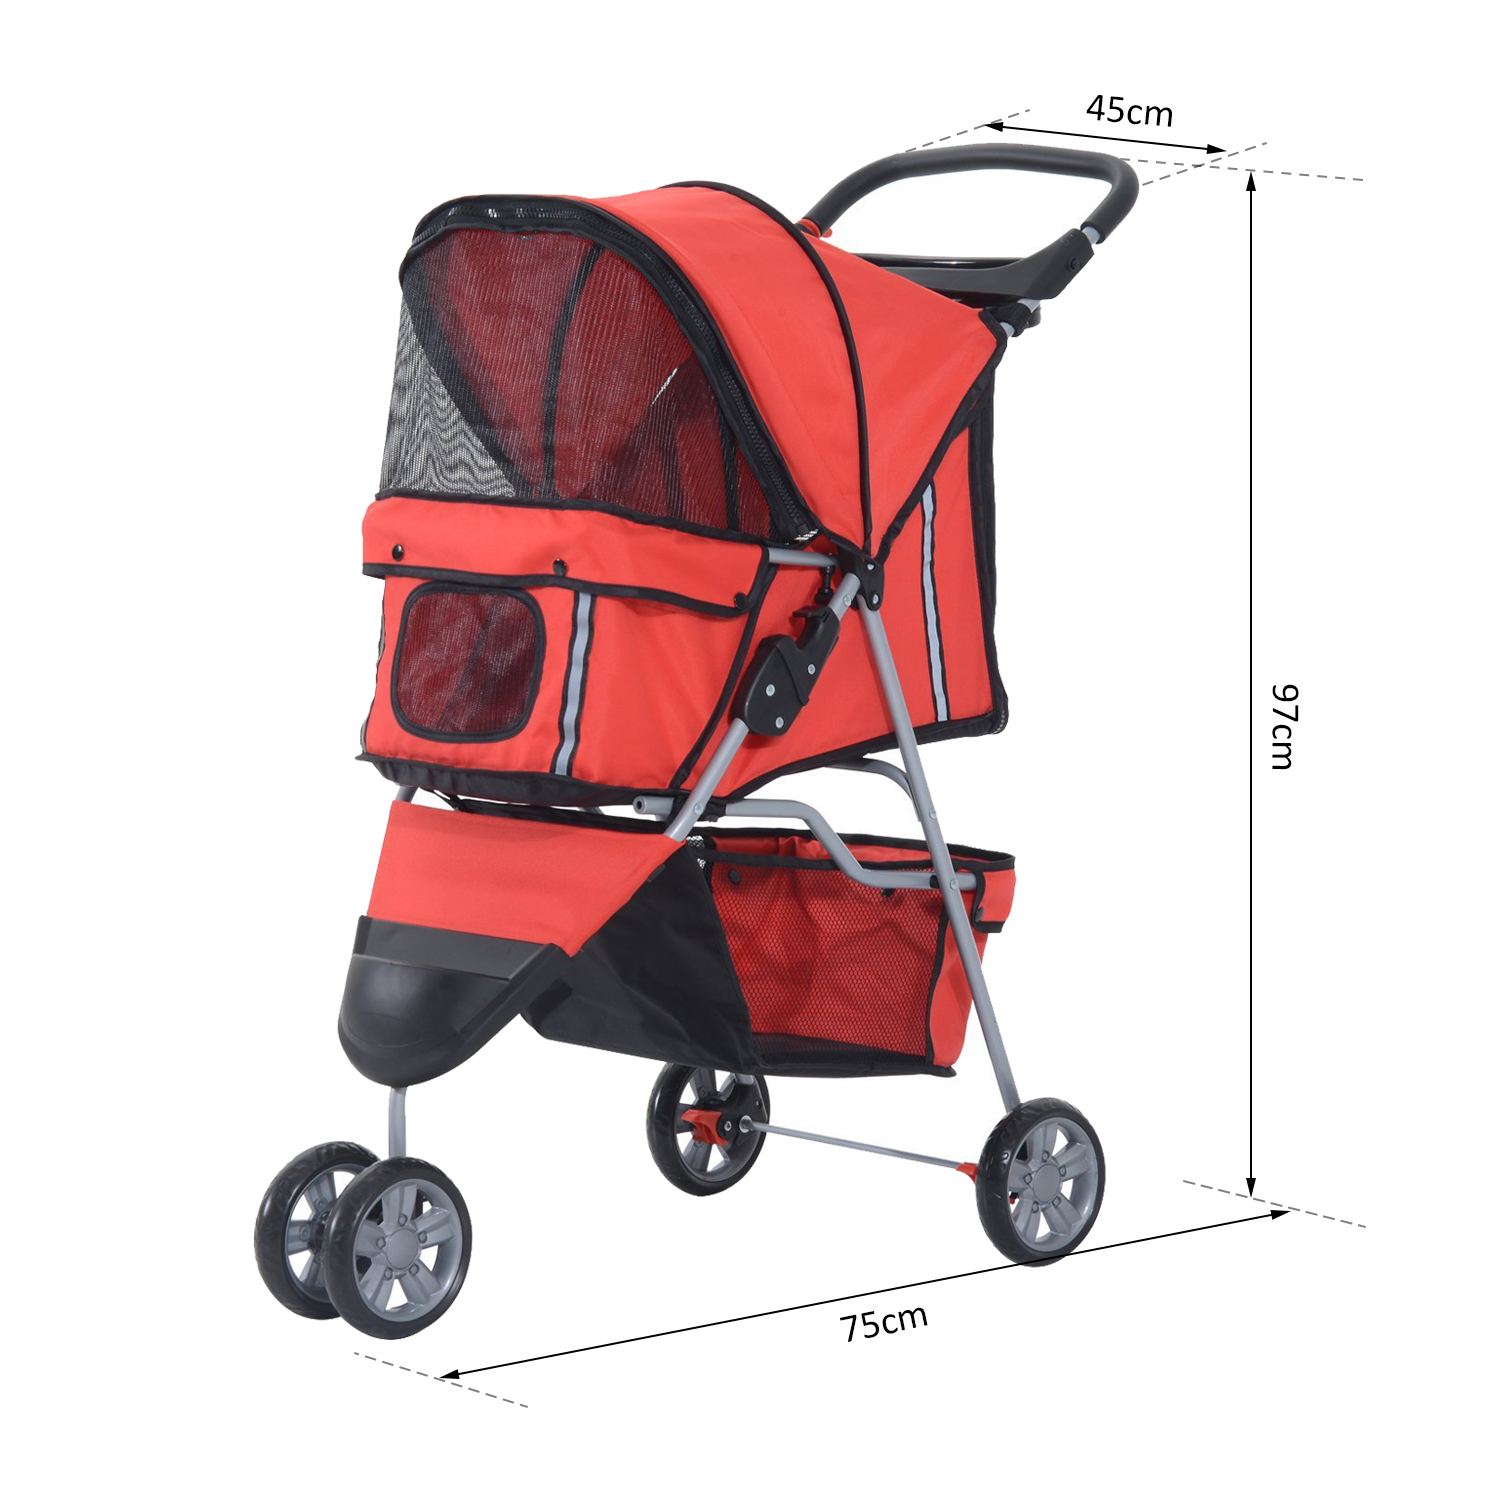 Oxford Pet Stroller Ebay Pet Travel Stroller Cat Dog Pushchair Puppy Jogger Carrier Three Wheels 5 Colour